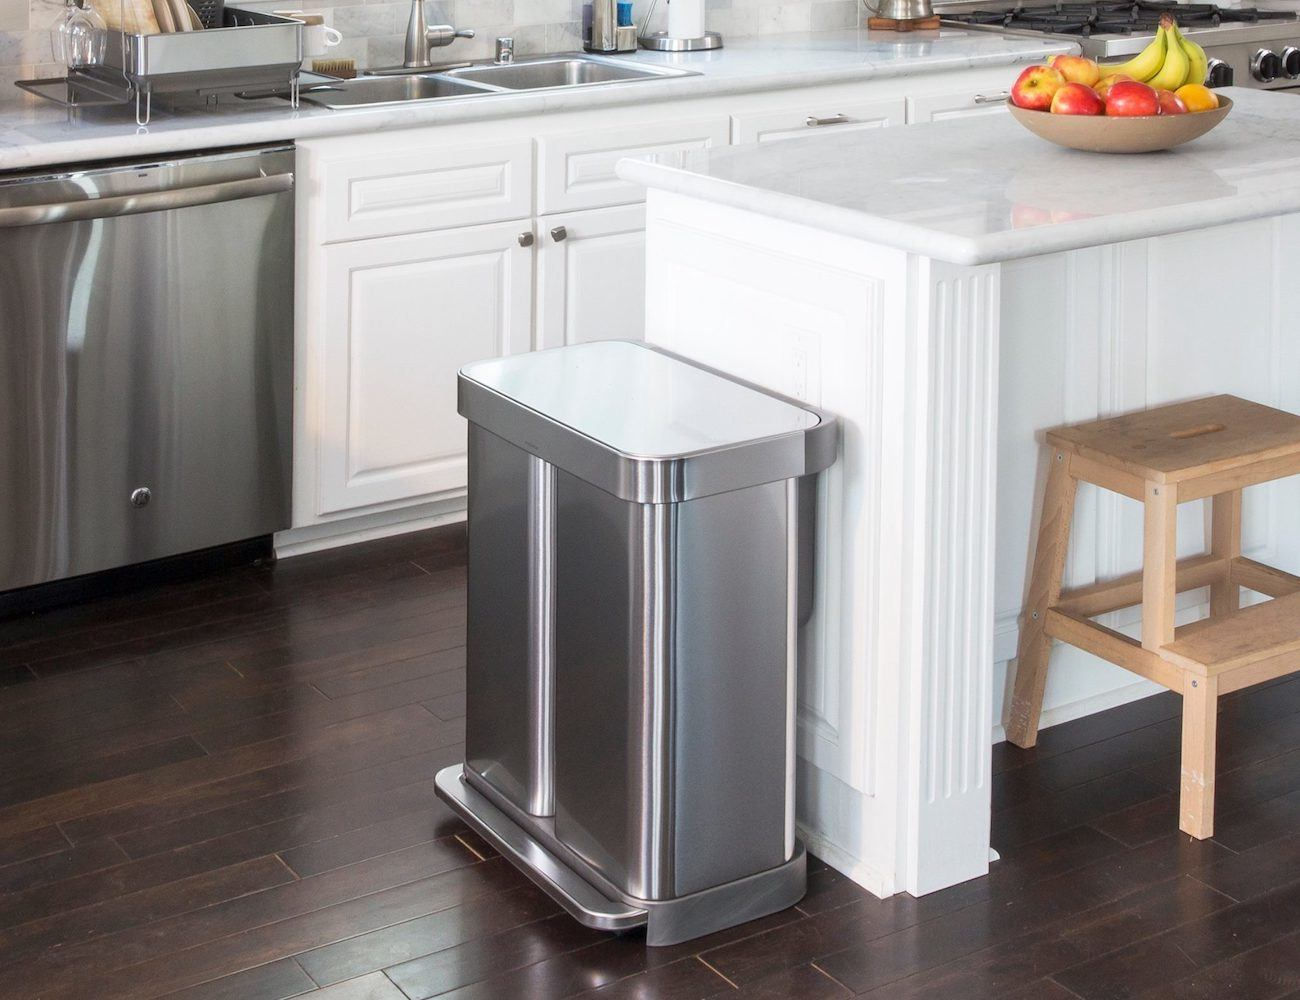 Dual Compartment Trash Cans 187 Gadget Flow